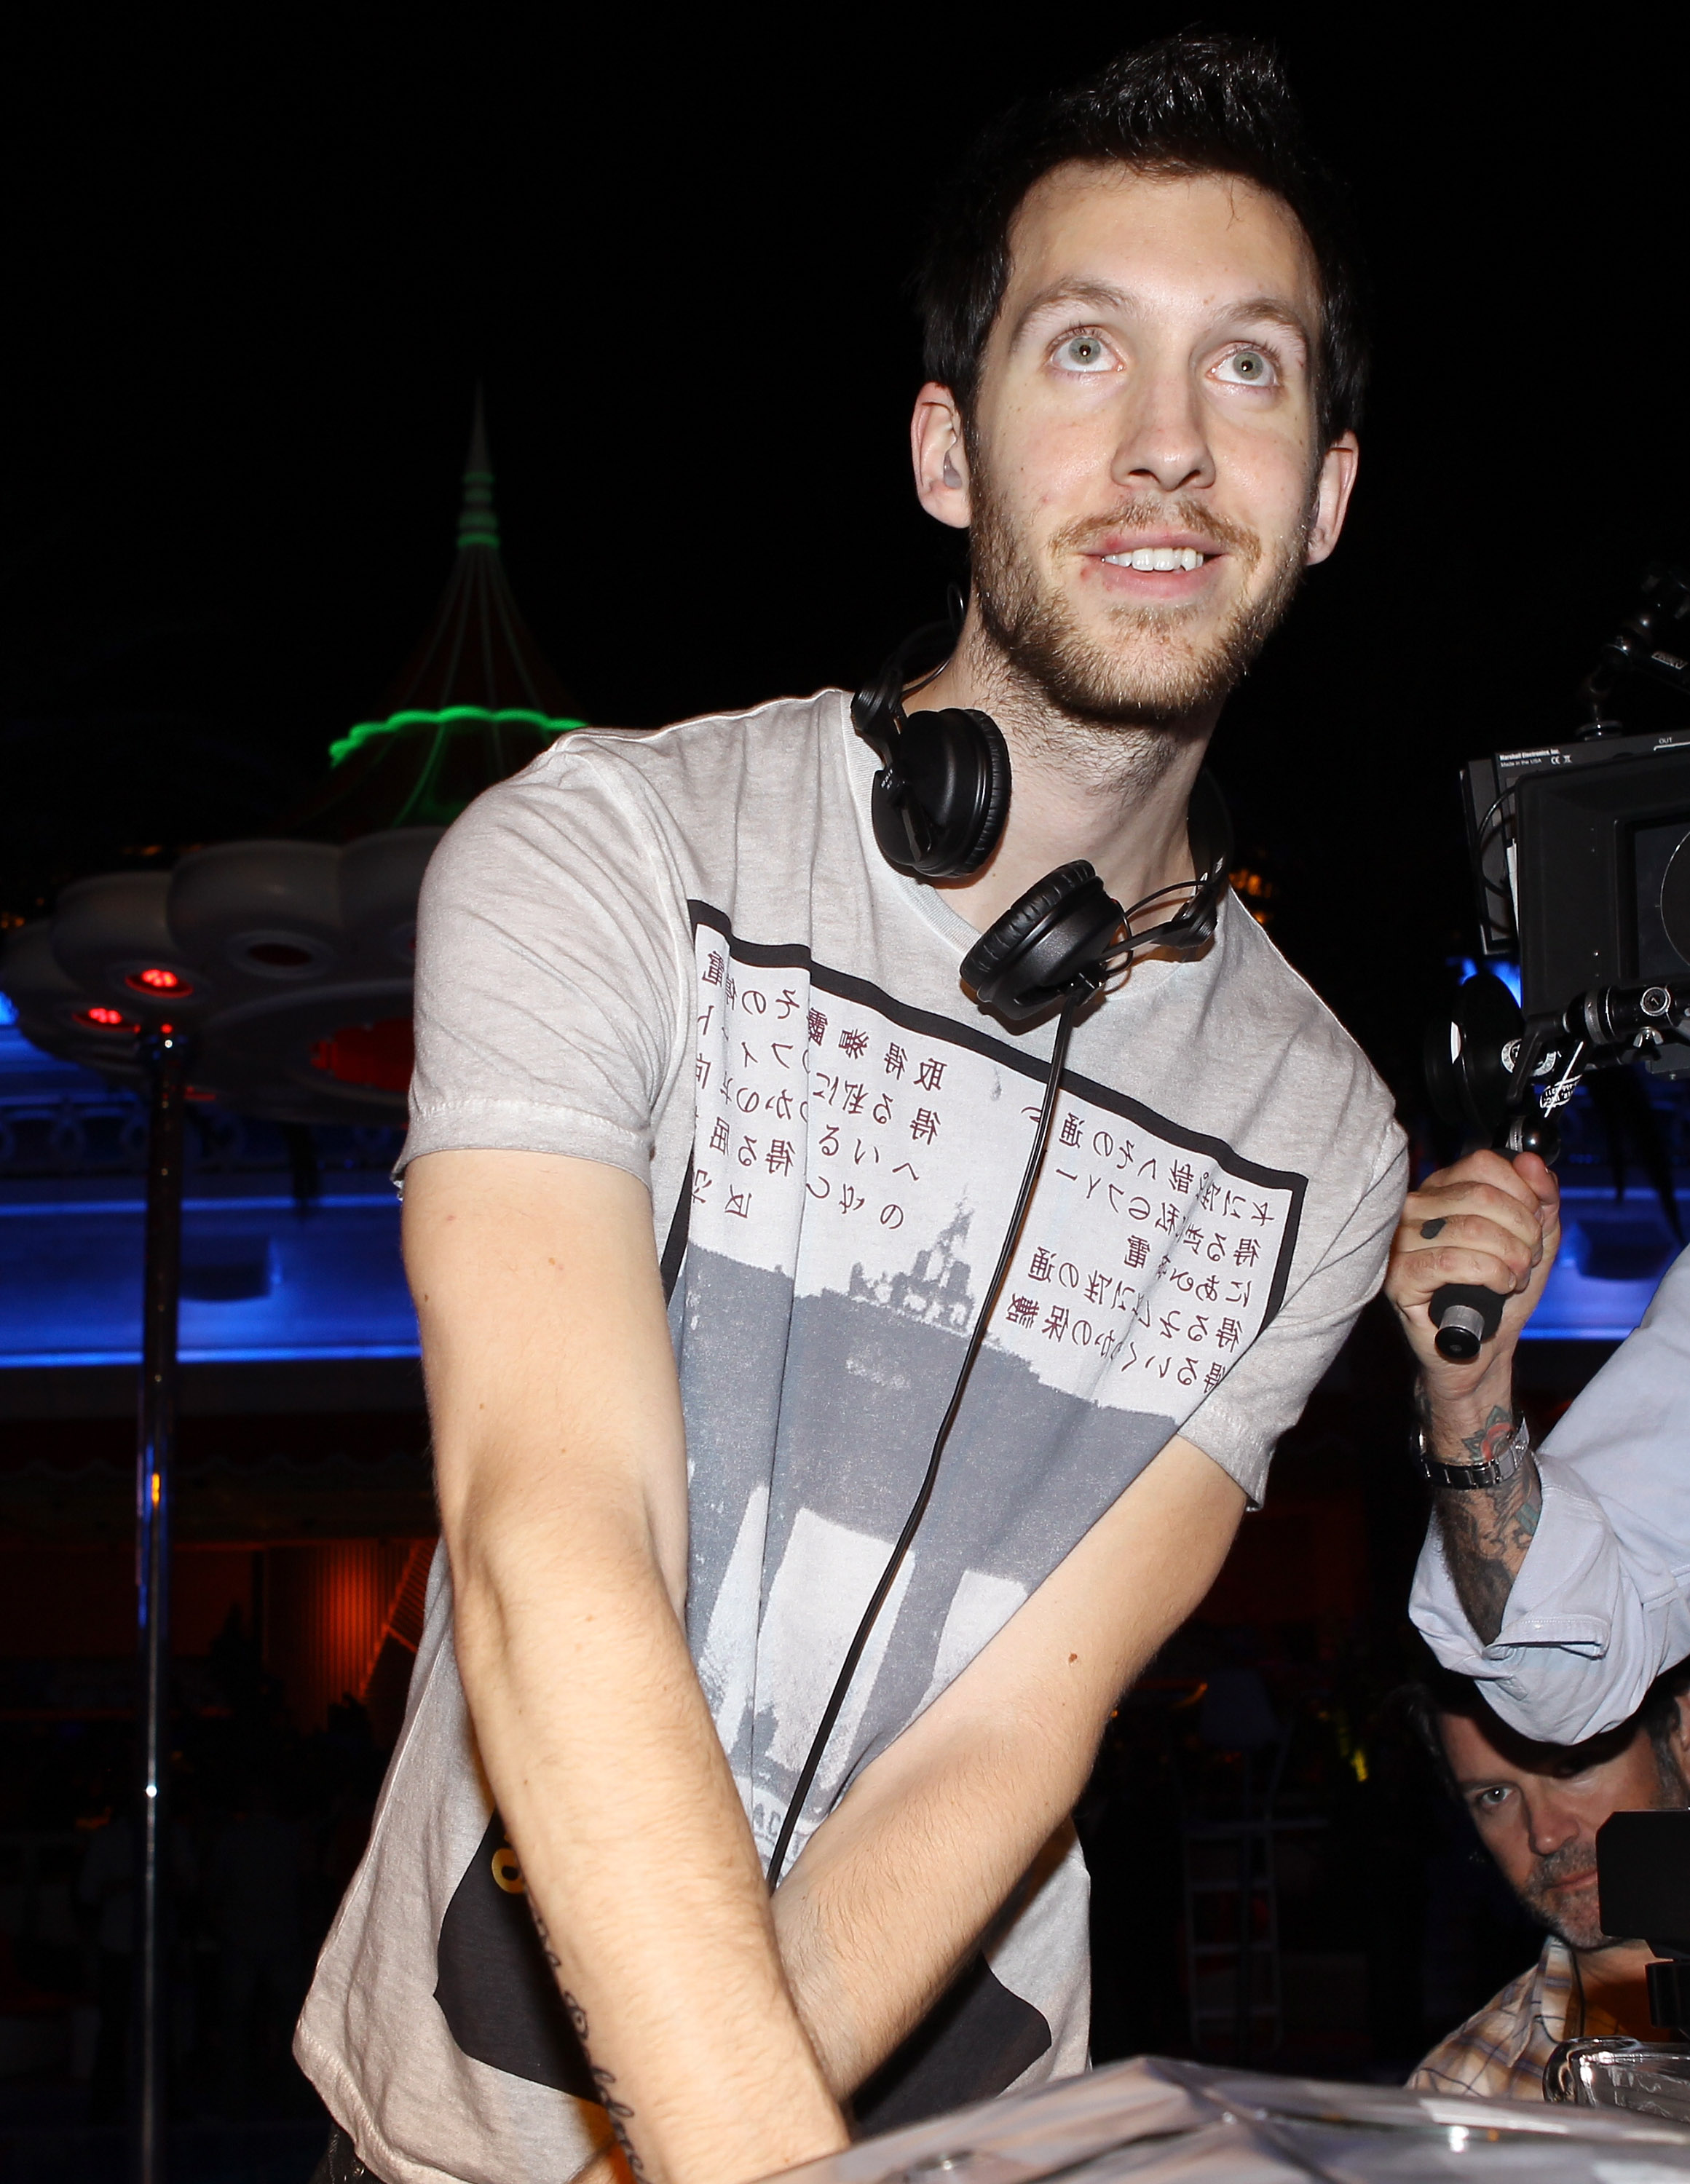 LAS VEGAS, NV - APRIL 02:  DJ Calvin Harris performs at Surrender Nightclub held at Encore on April 2, 2011 in Las Vegas, Nevada.  (Photo by Michael Tran/WireImage)